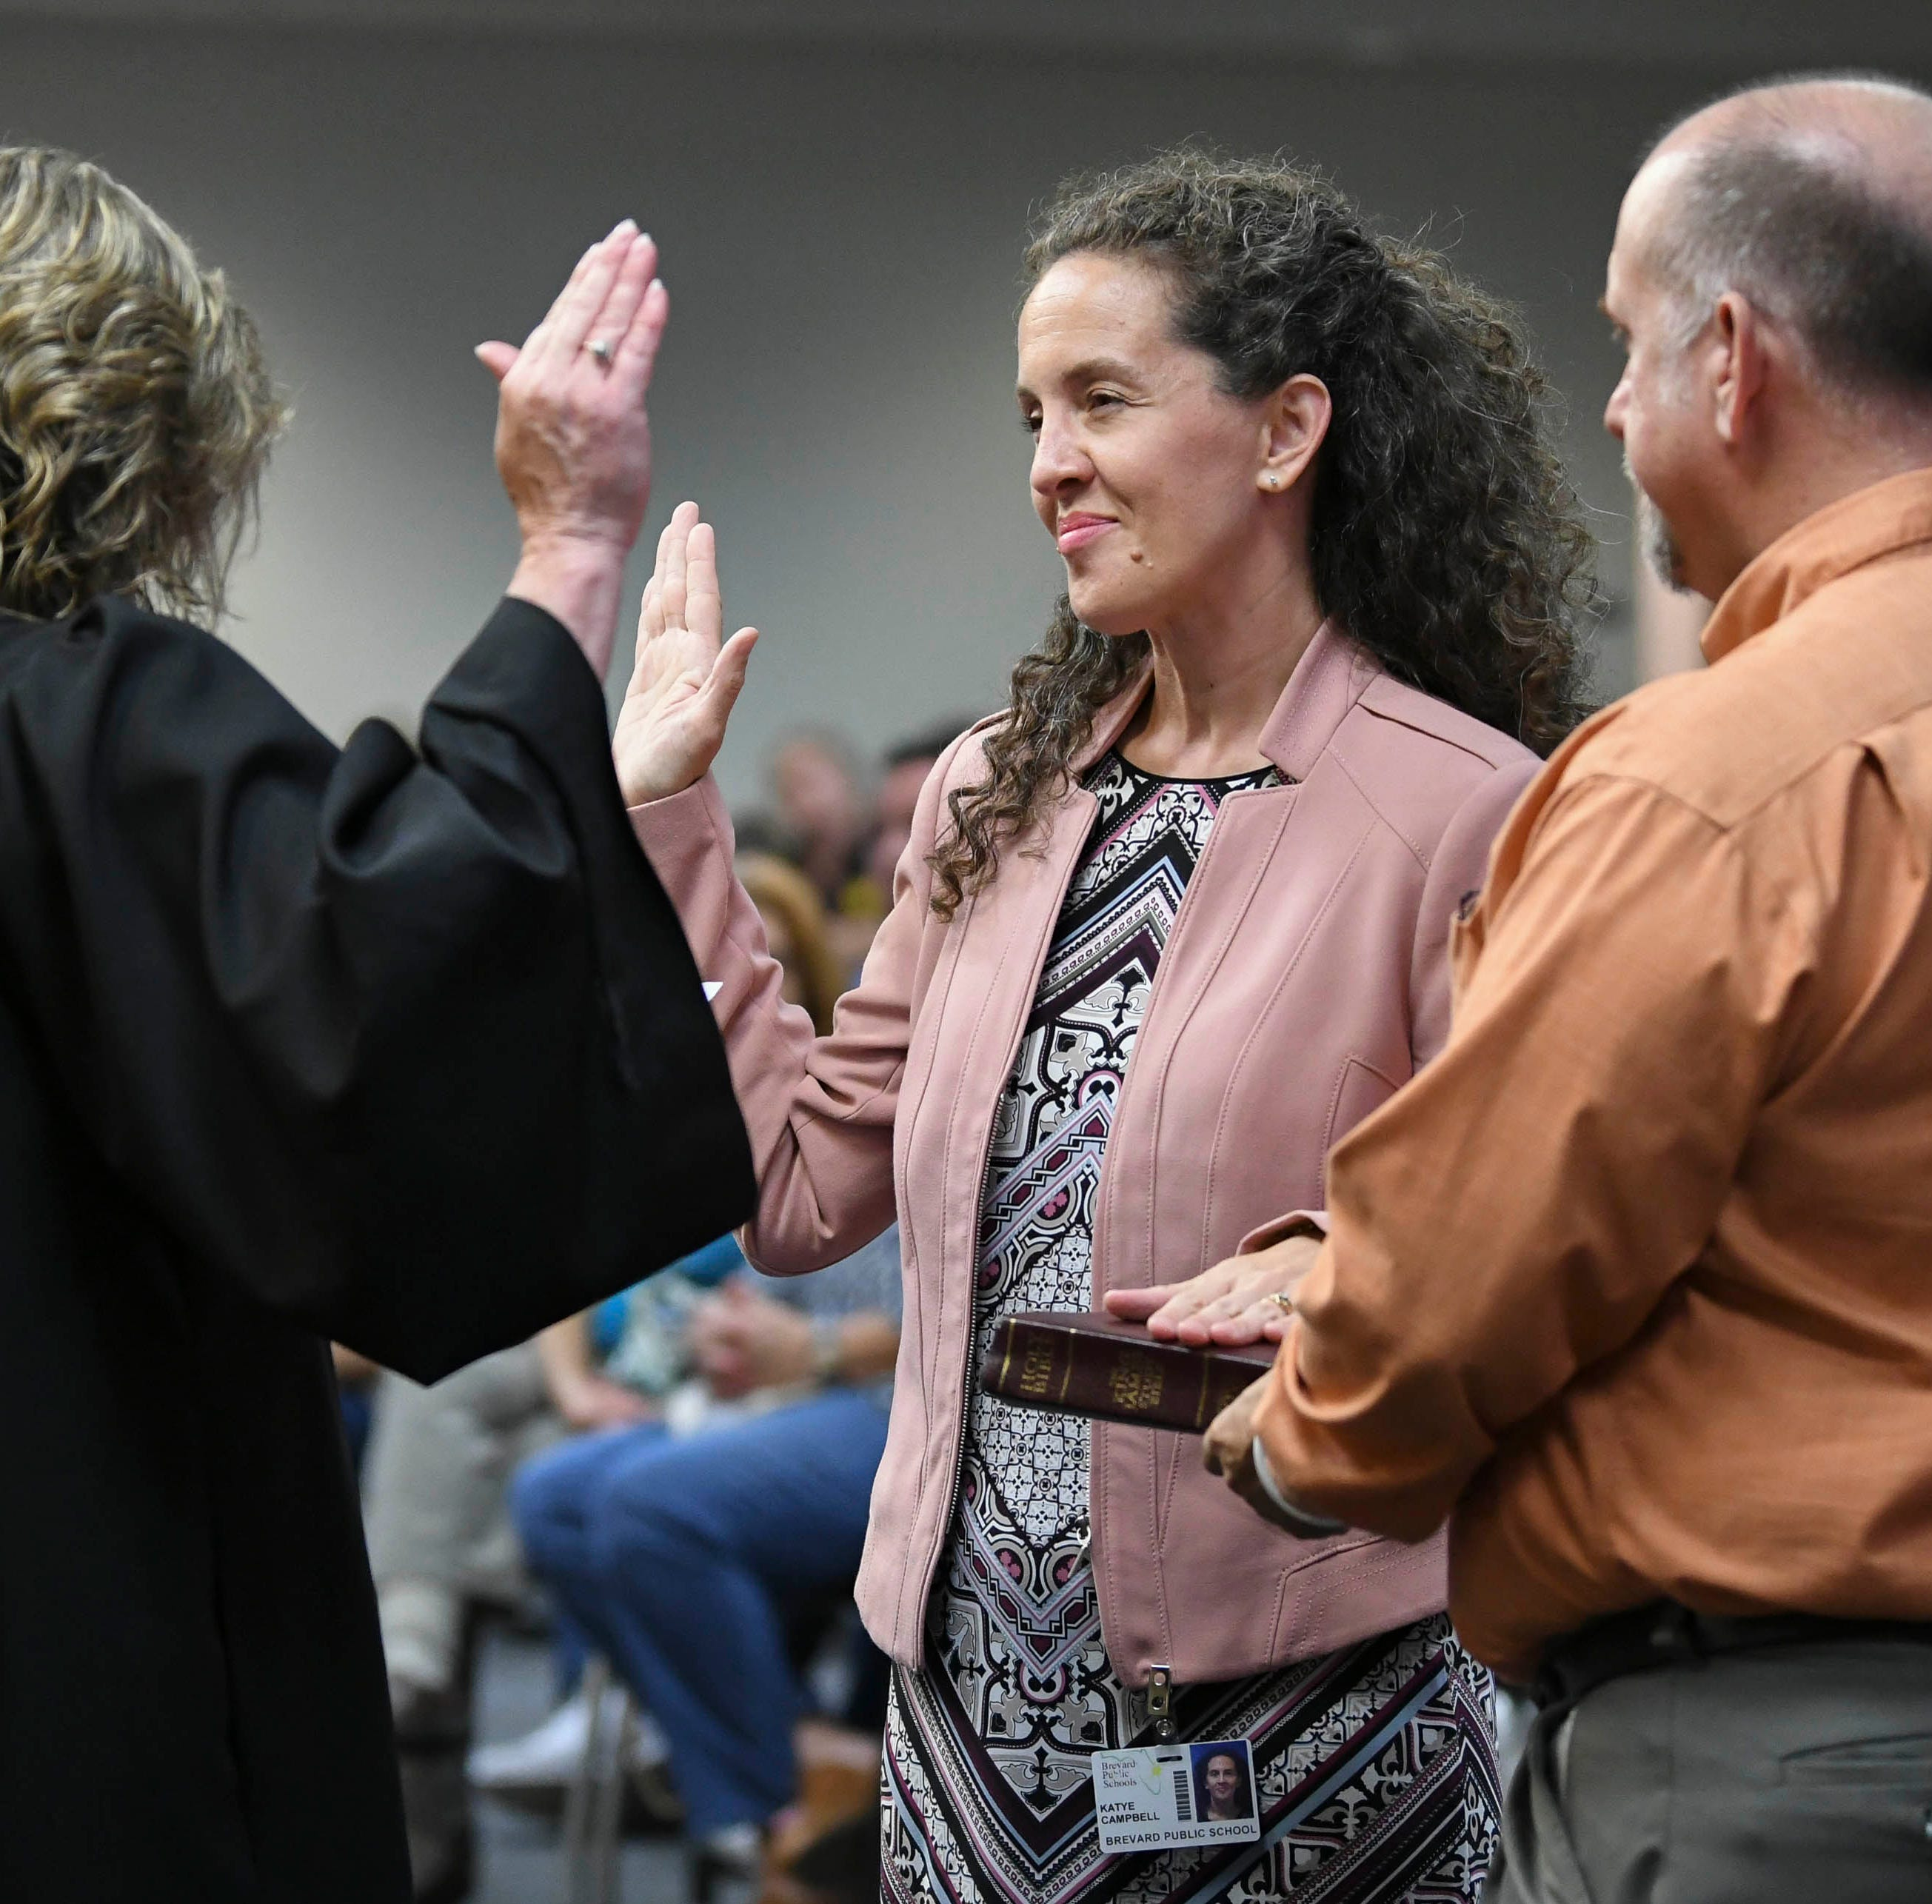 New Brevard School Board members sworn in; Tina Descovich named board chair